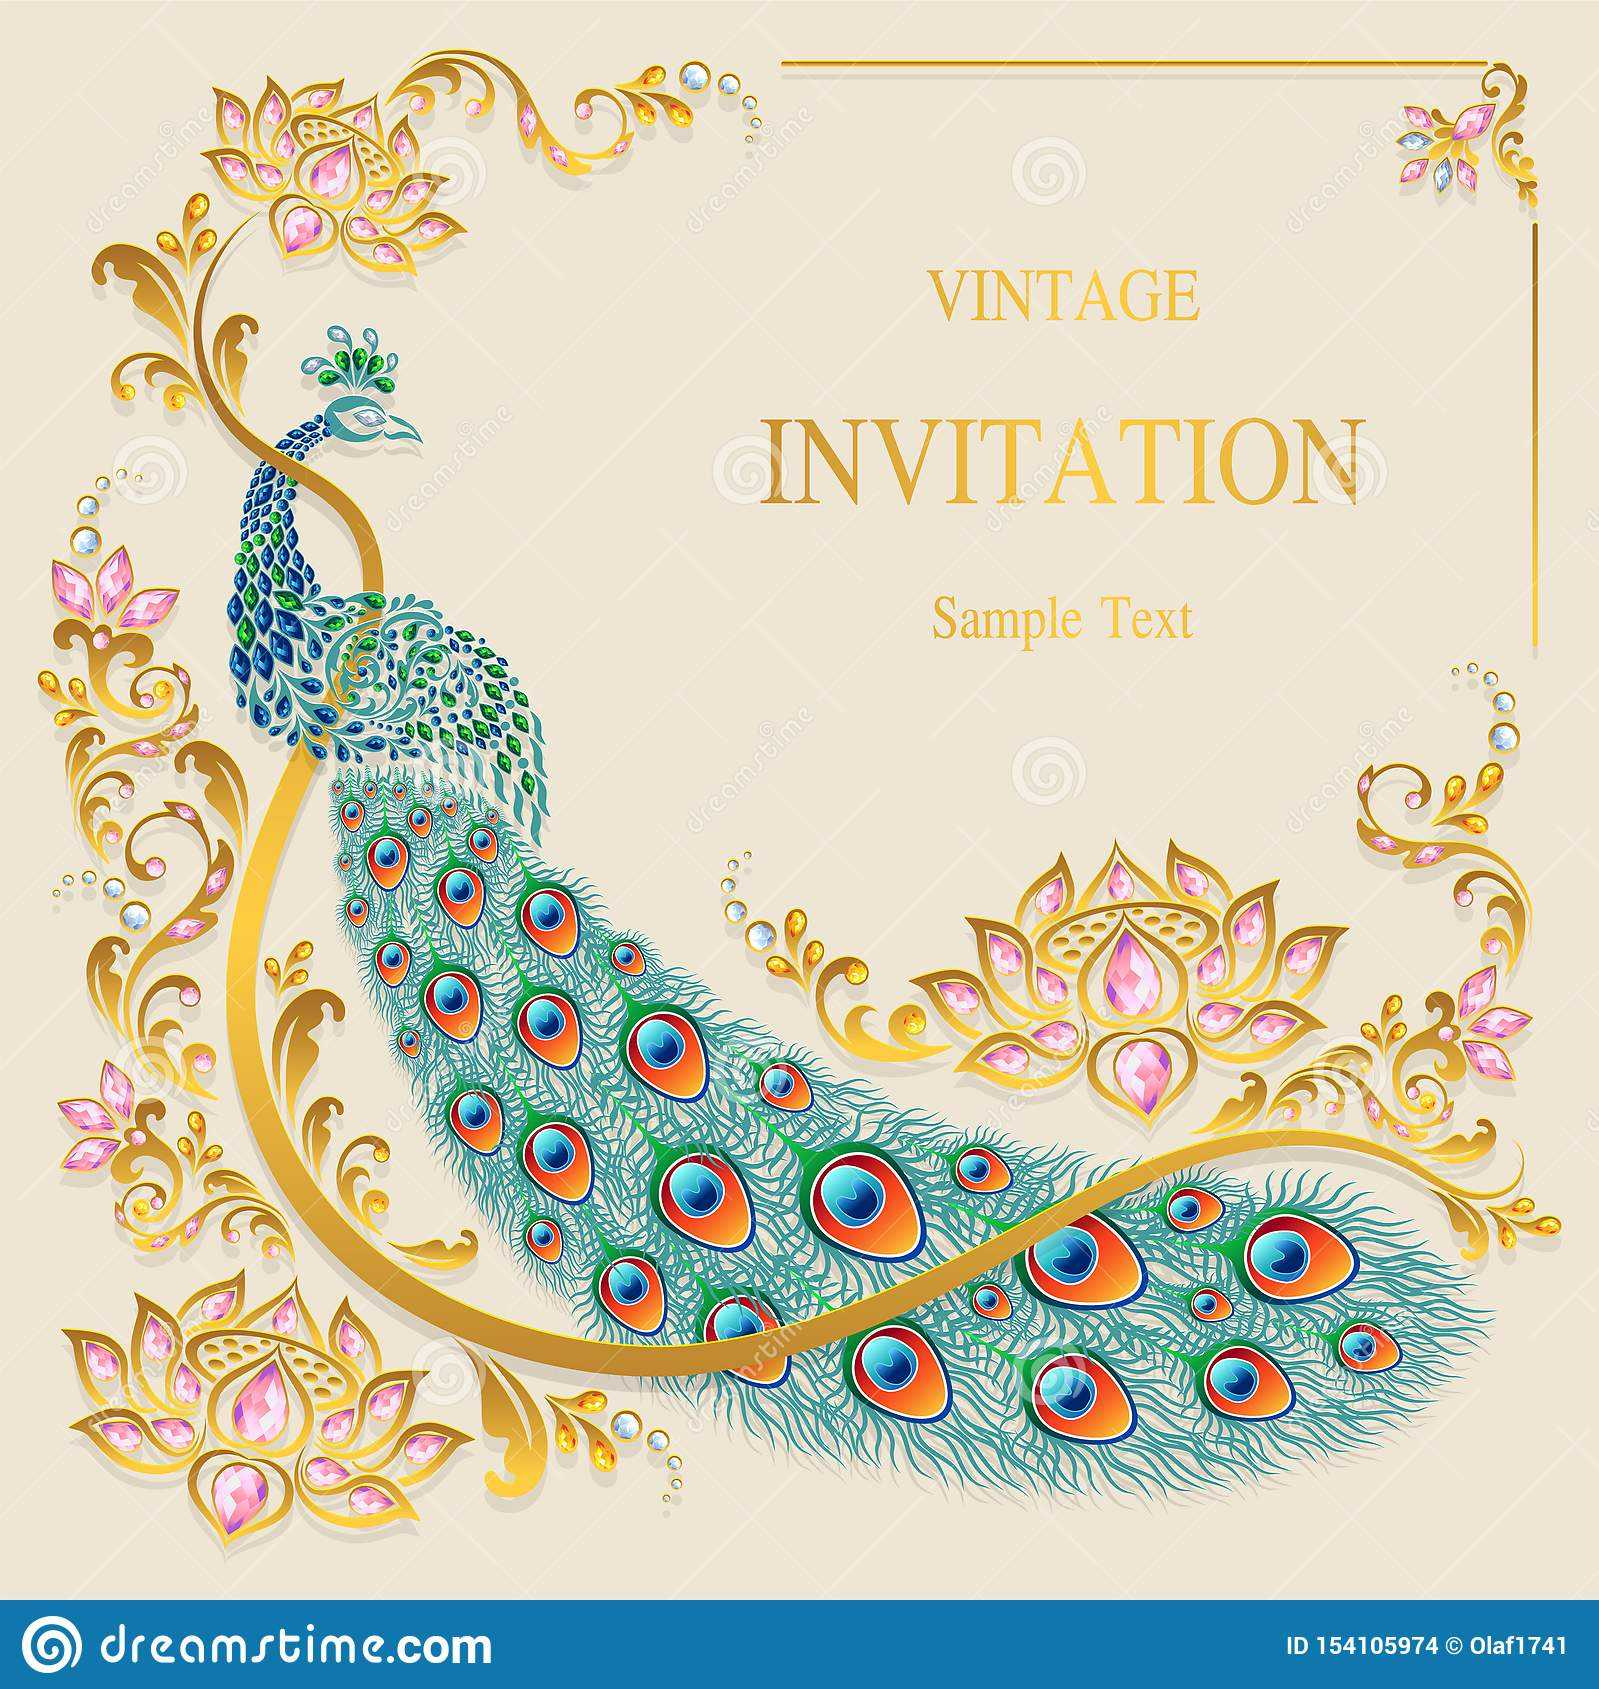 Indian Wedding Invitation Card Templates . Stock Vector Inside Indian Wedding Cards Design Templates